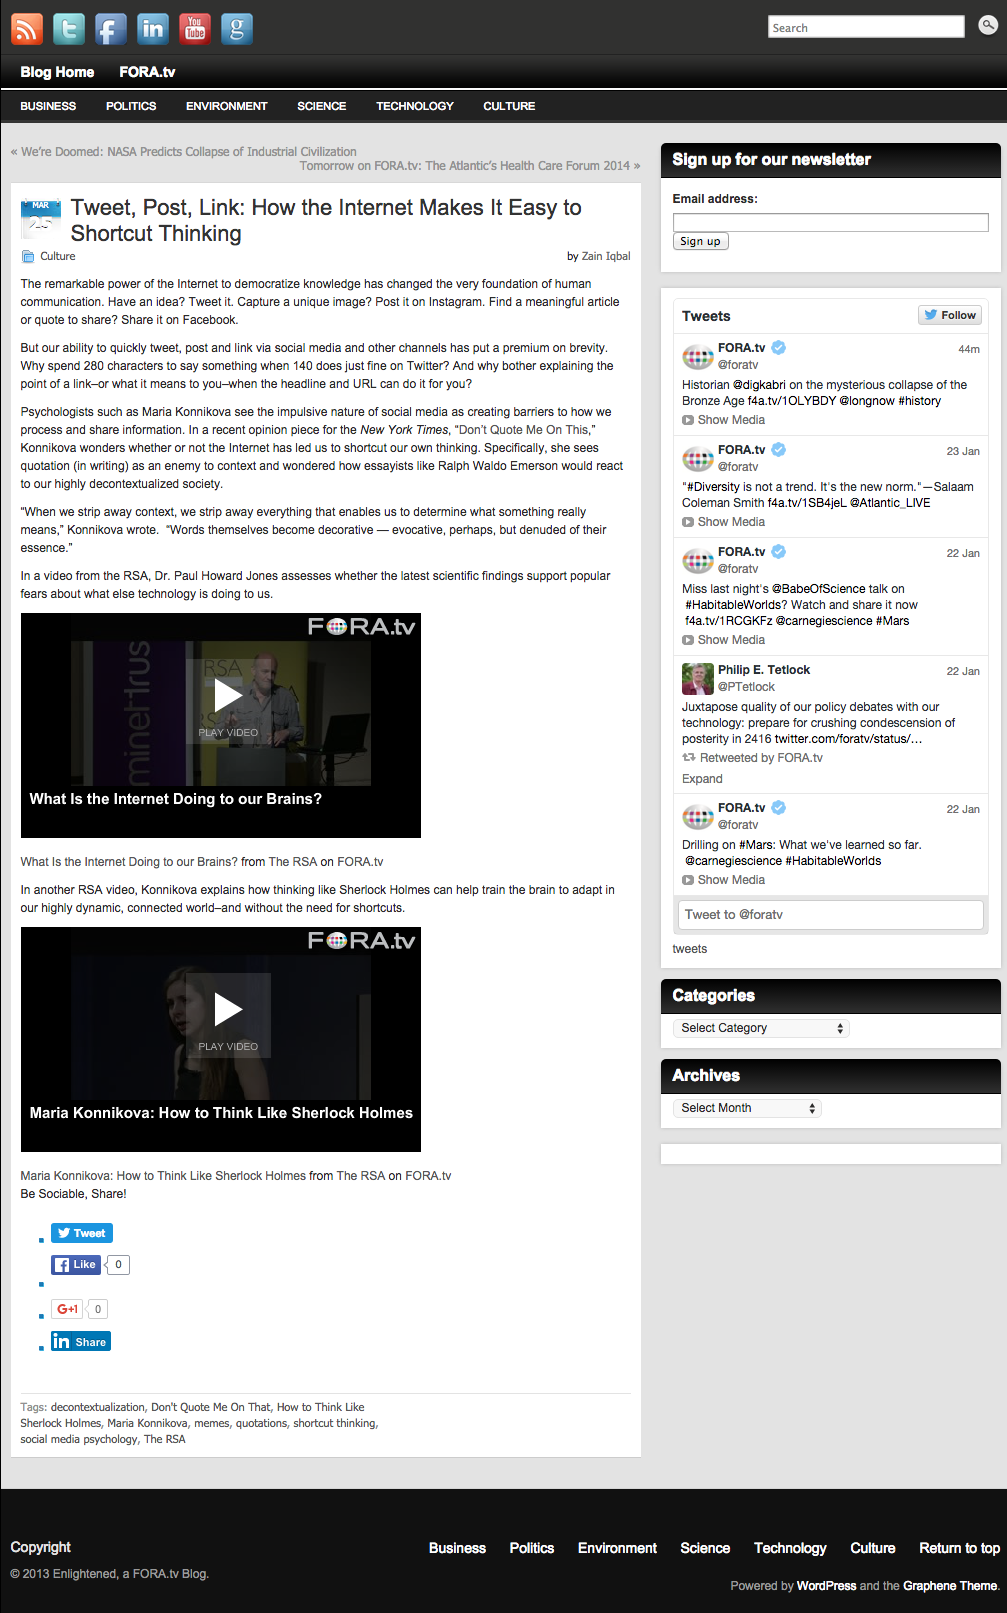 screencapture-enarchive-fora-tv-2014-03-tweet-post-link-how-the-internet-makes-it-easy-to-shortcut-our-thinking.png